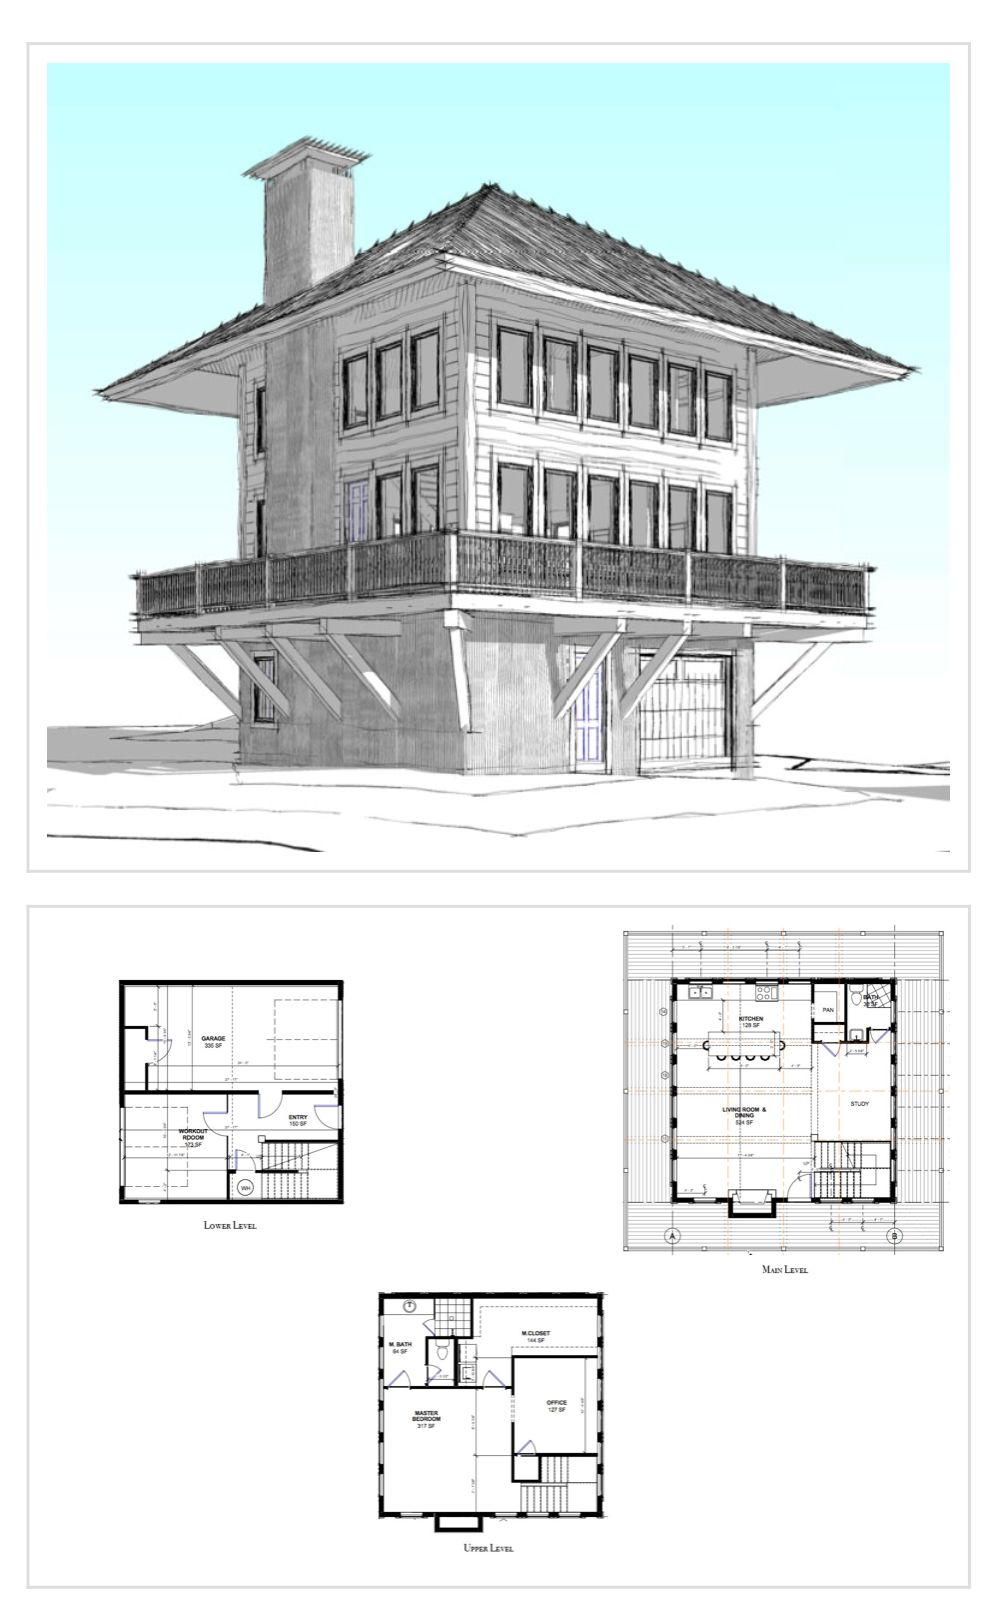 Pin By Tjia Frans On Tiny Houses My House Plans House Plans Small House Design